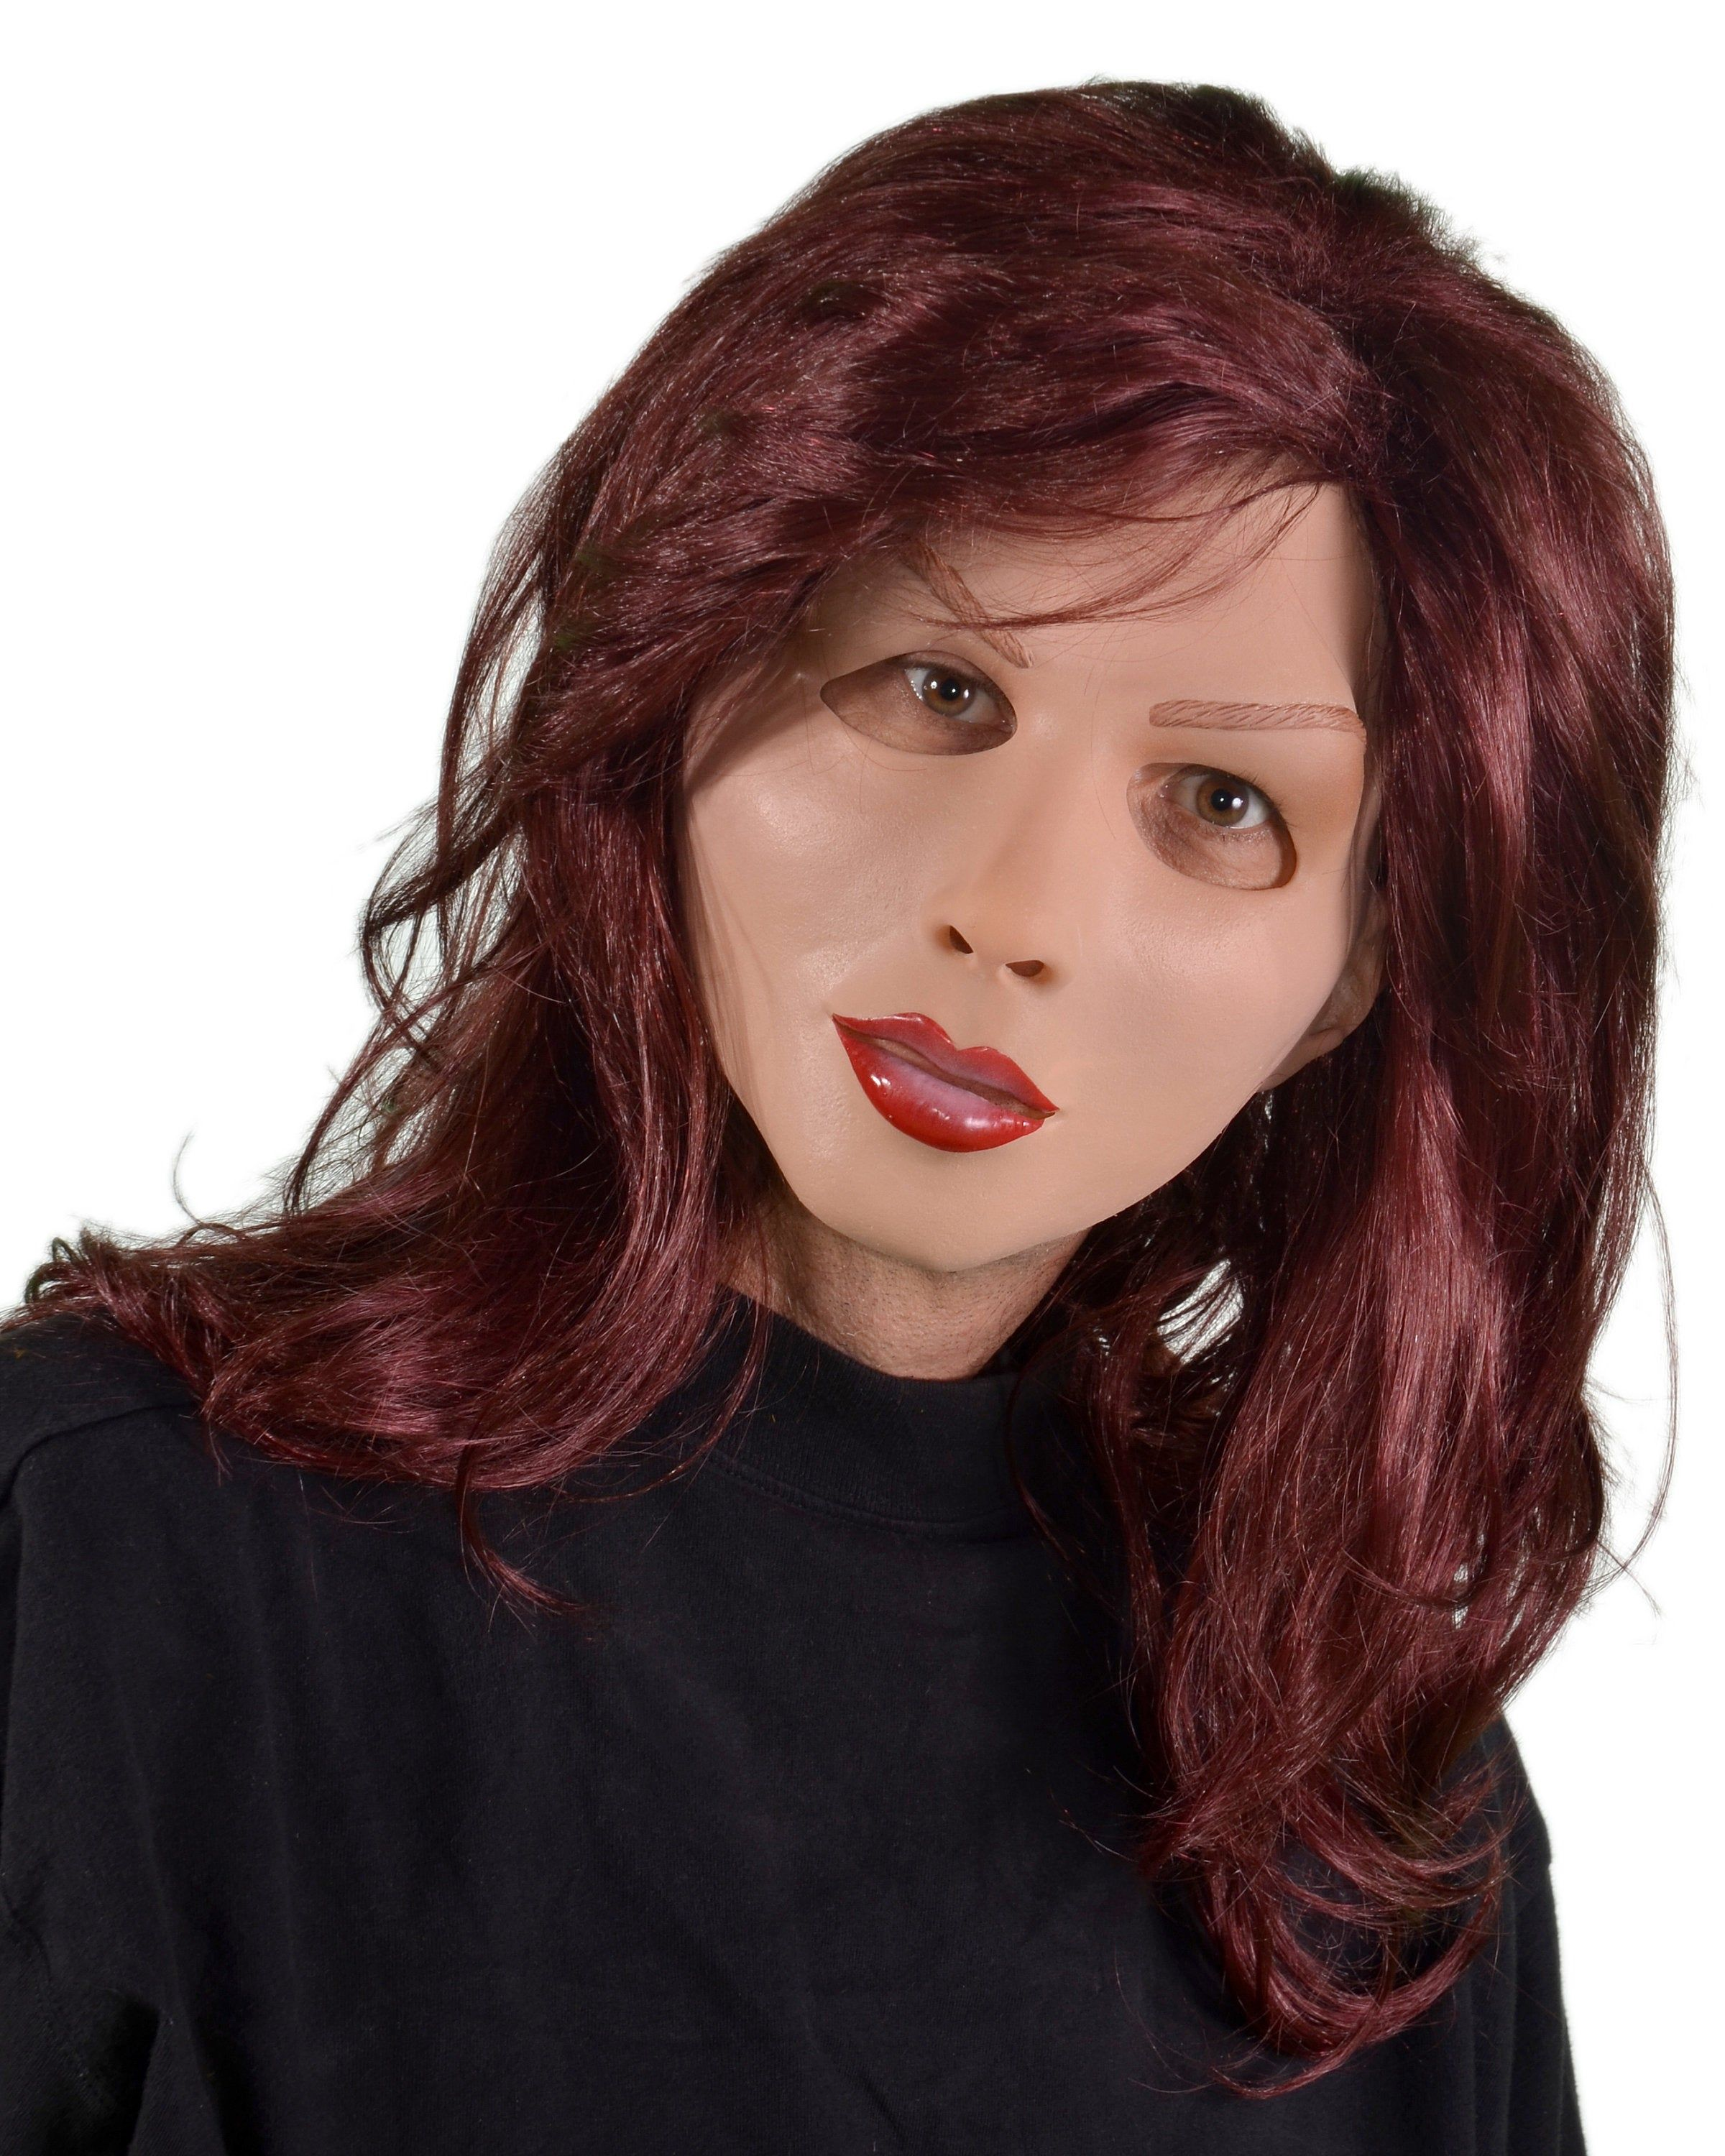 Red Head Face Mask Pretty Woman Doll Mannequin Creepy